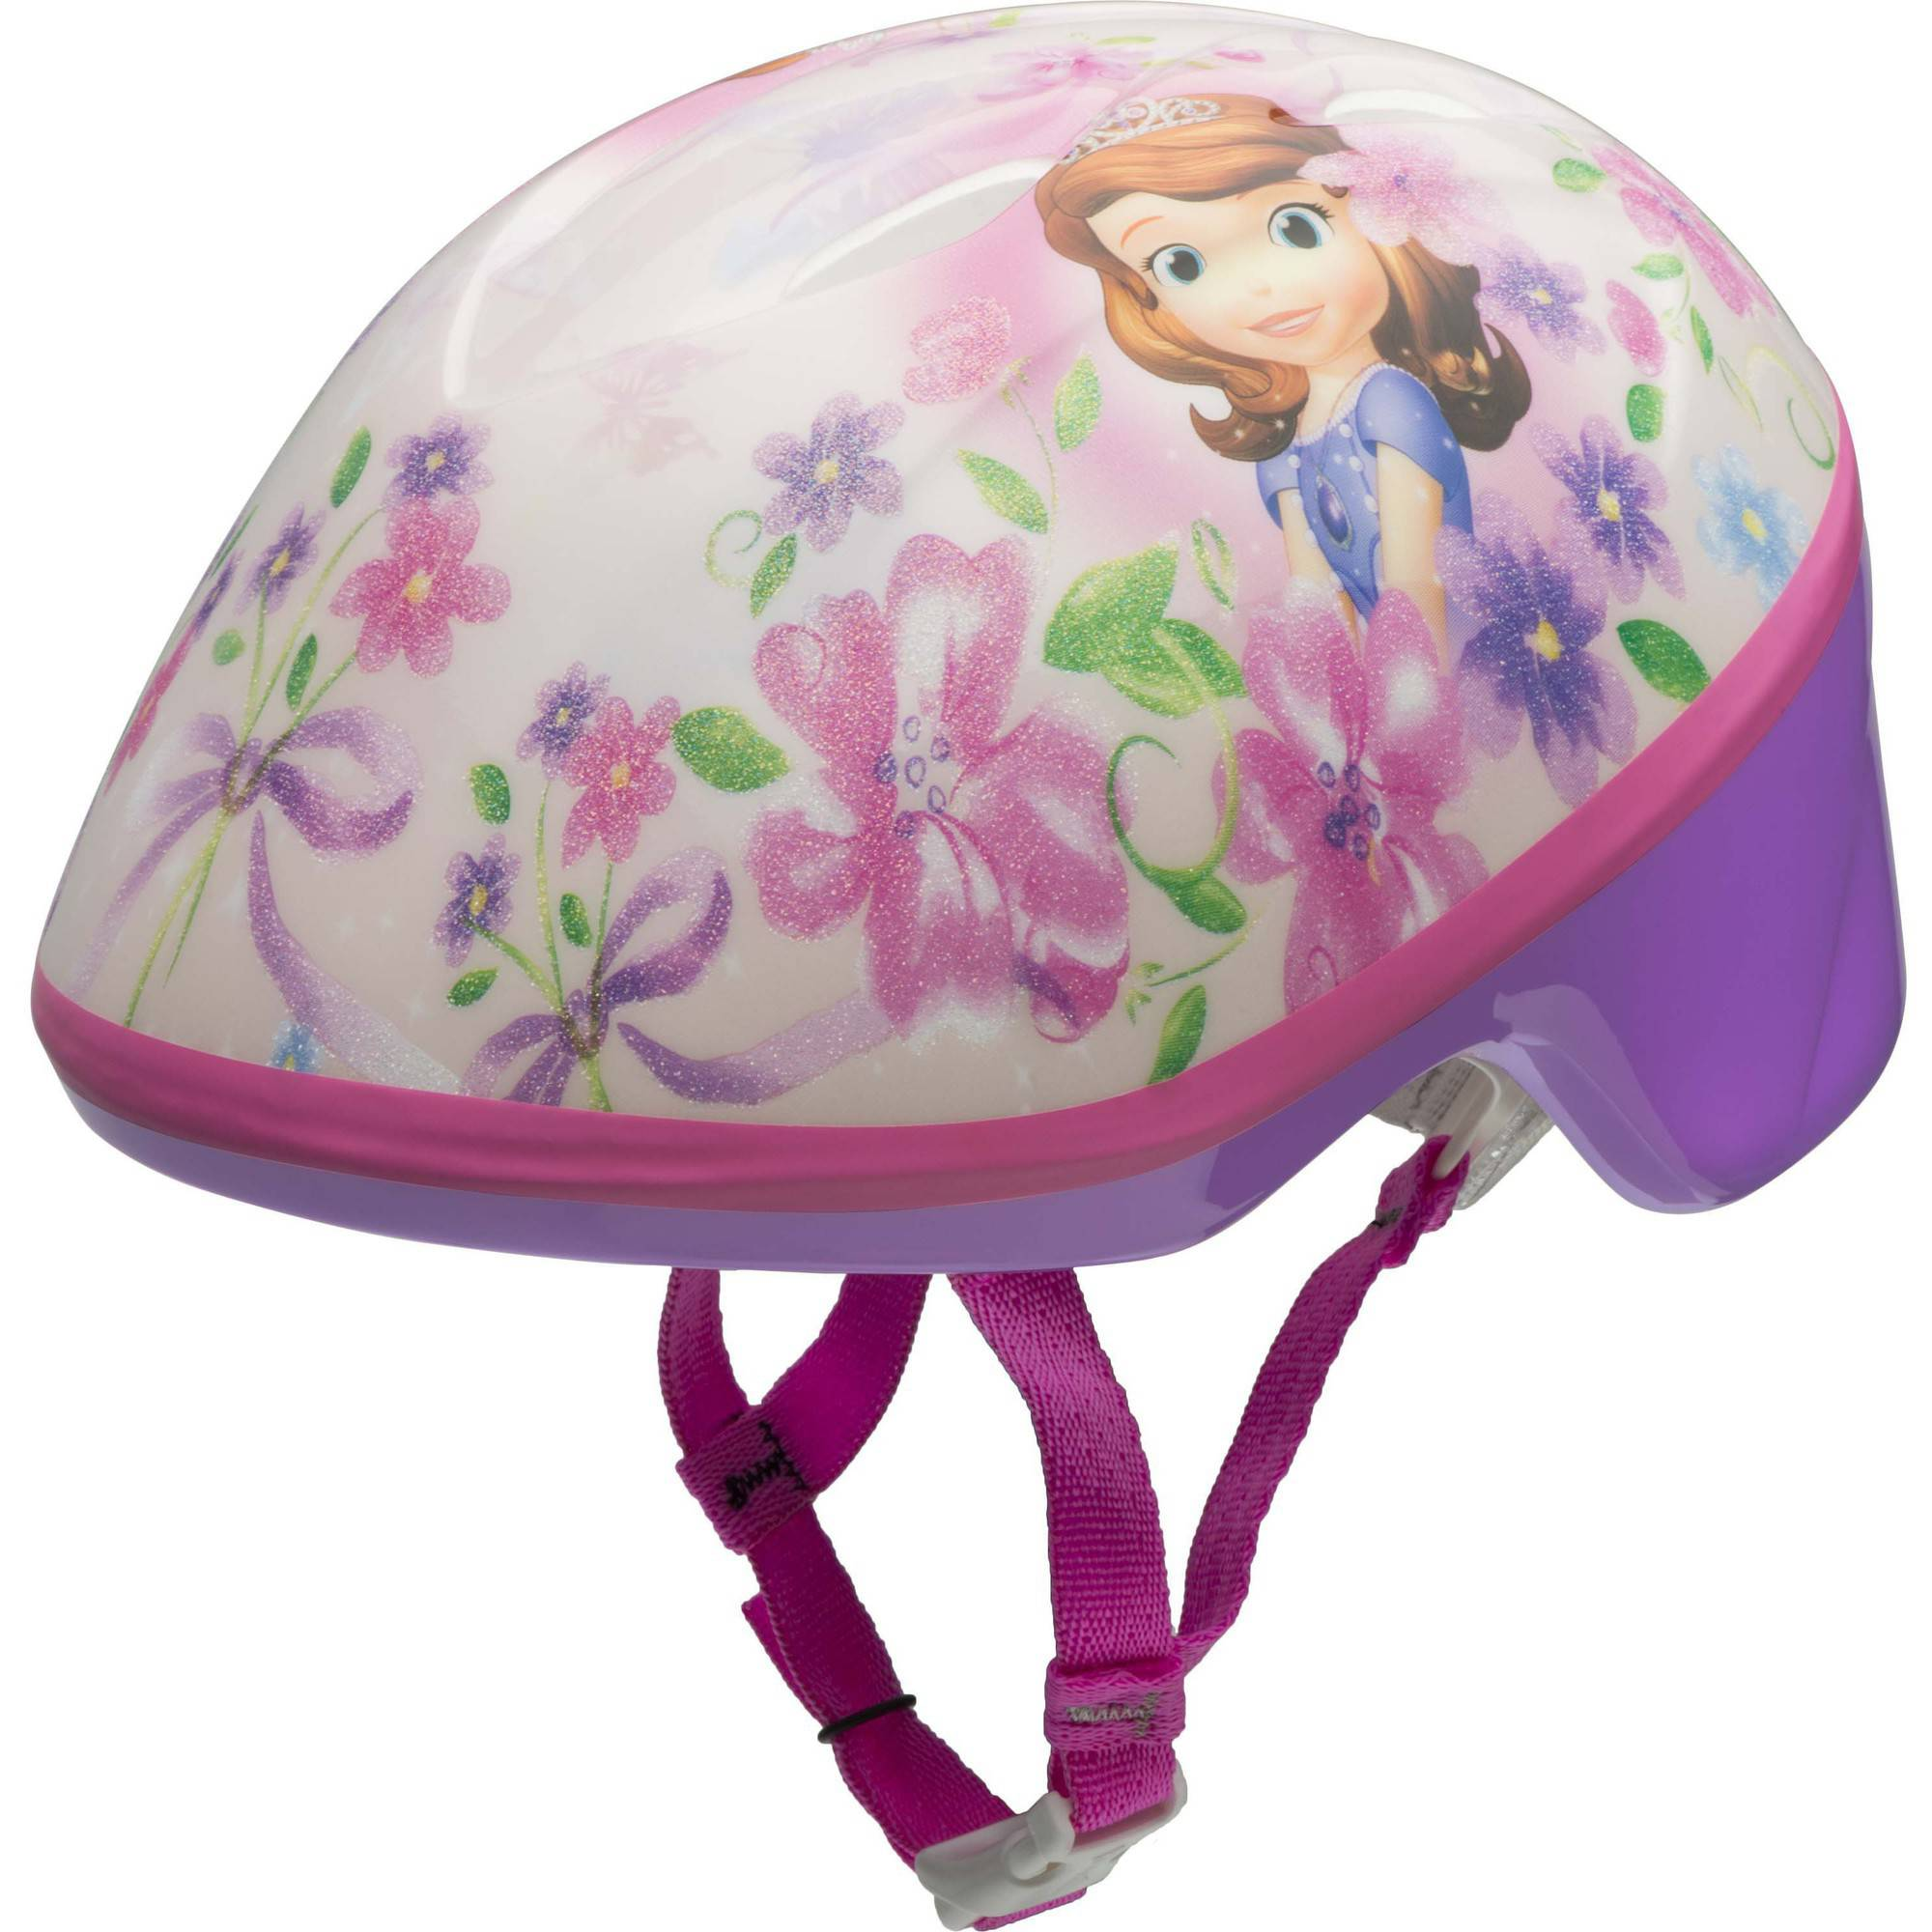 Bell Sports Sofia the First Toddler Bike Helmet, Pink and White